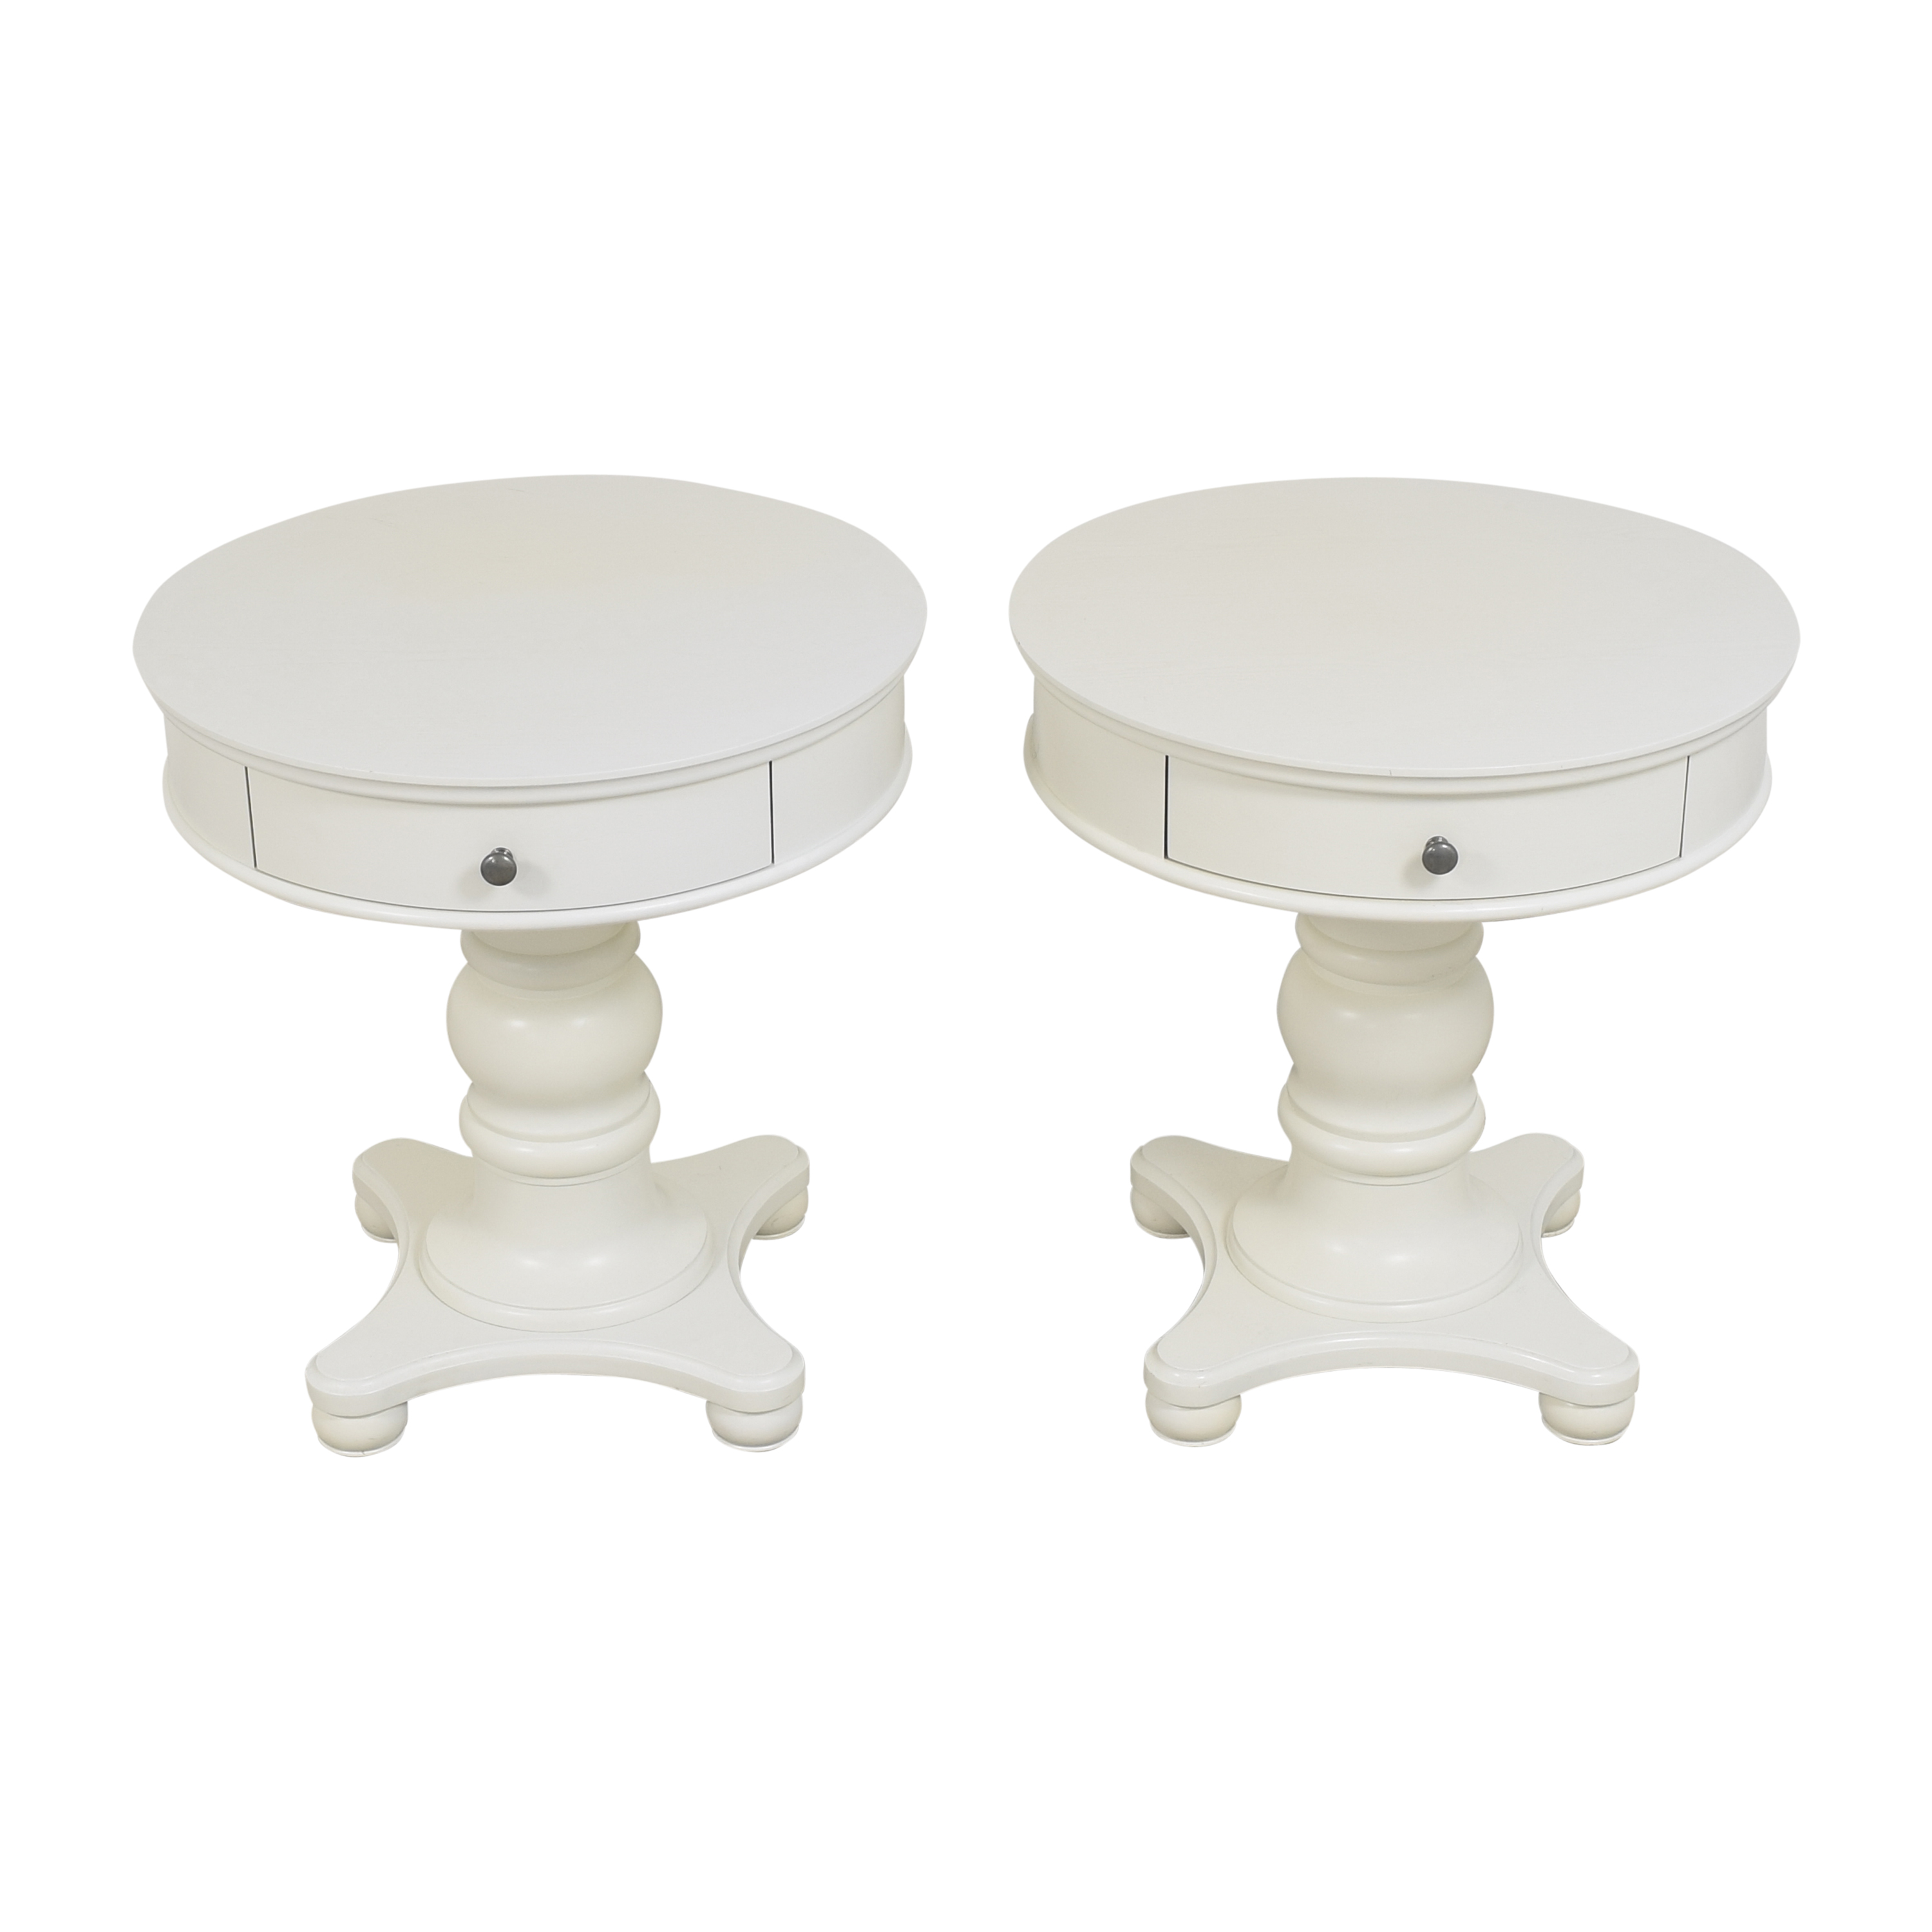 Pottery Barn Pottery Barn Francisco End Tables discount